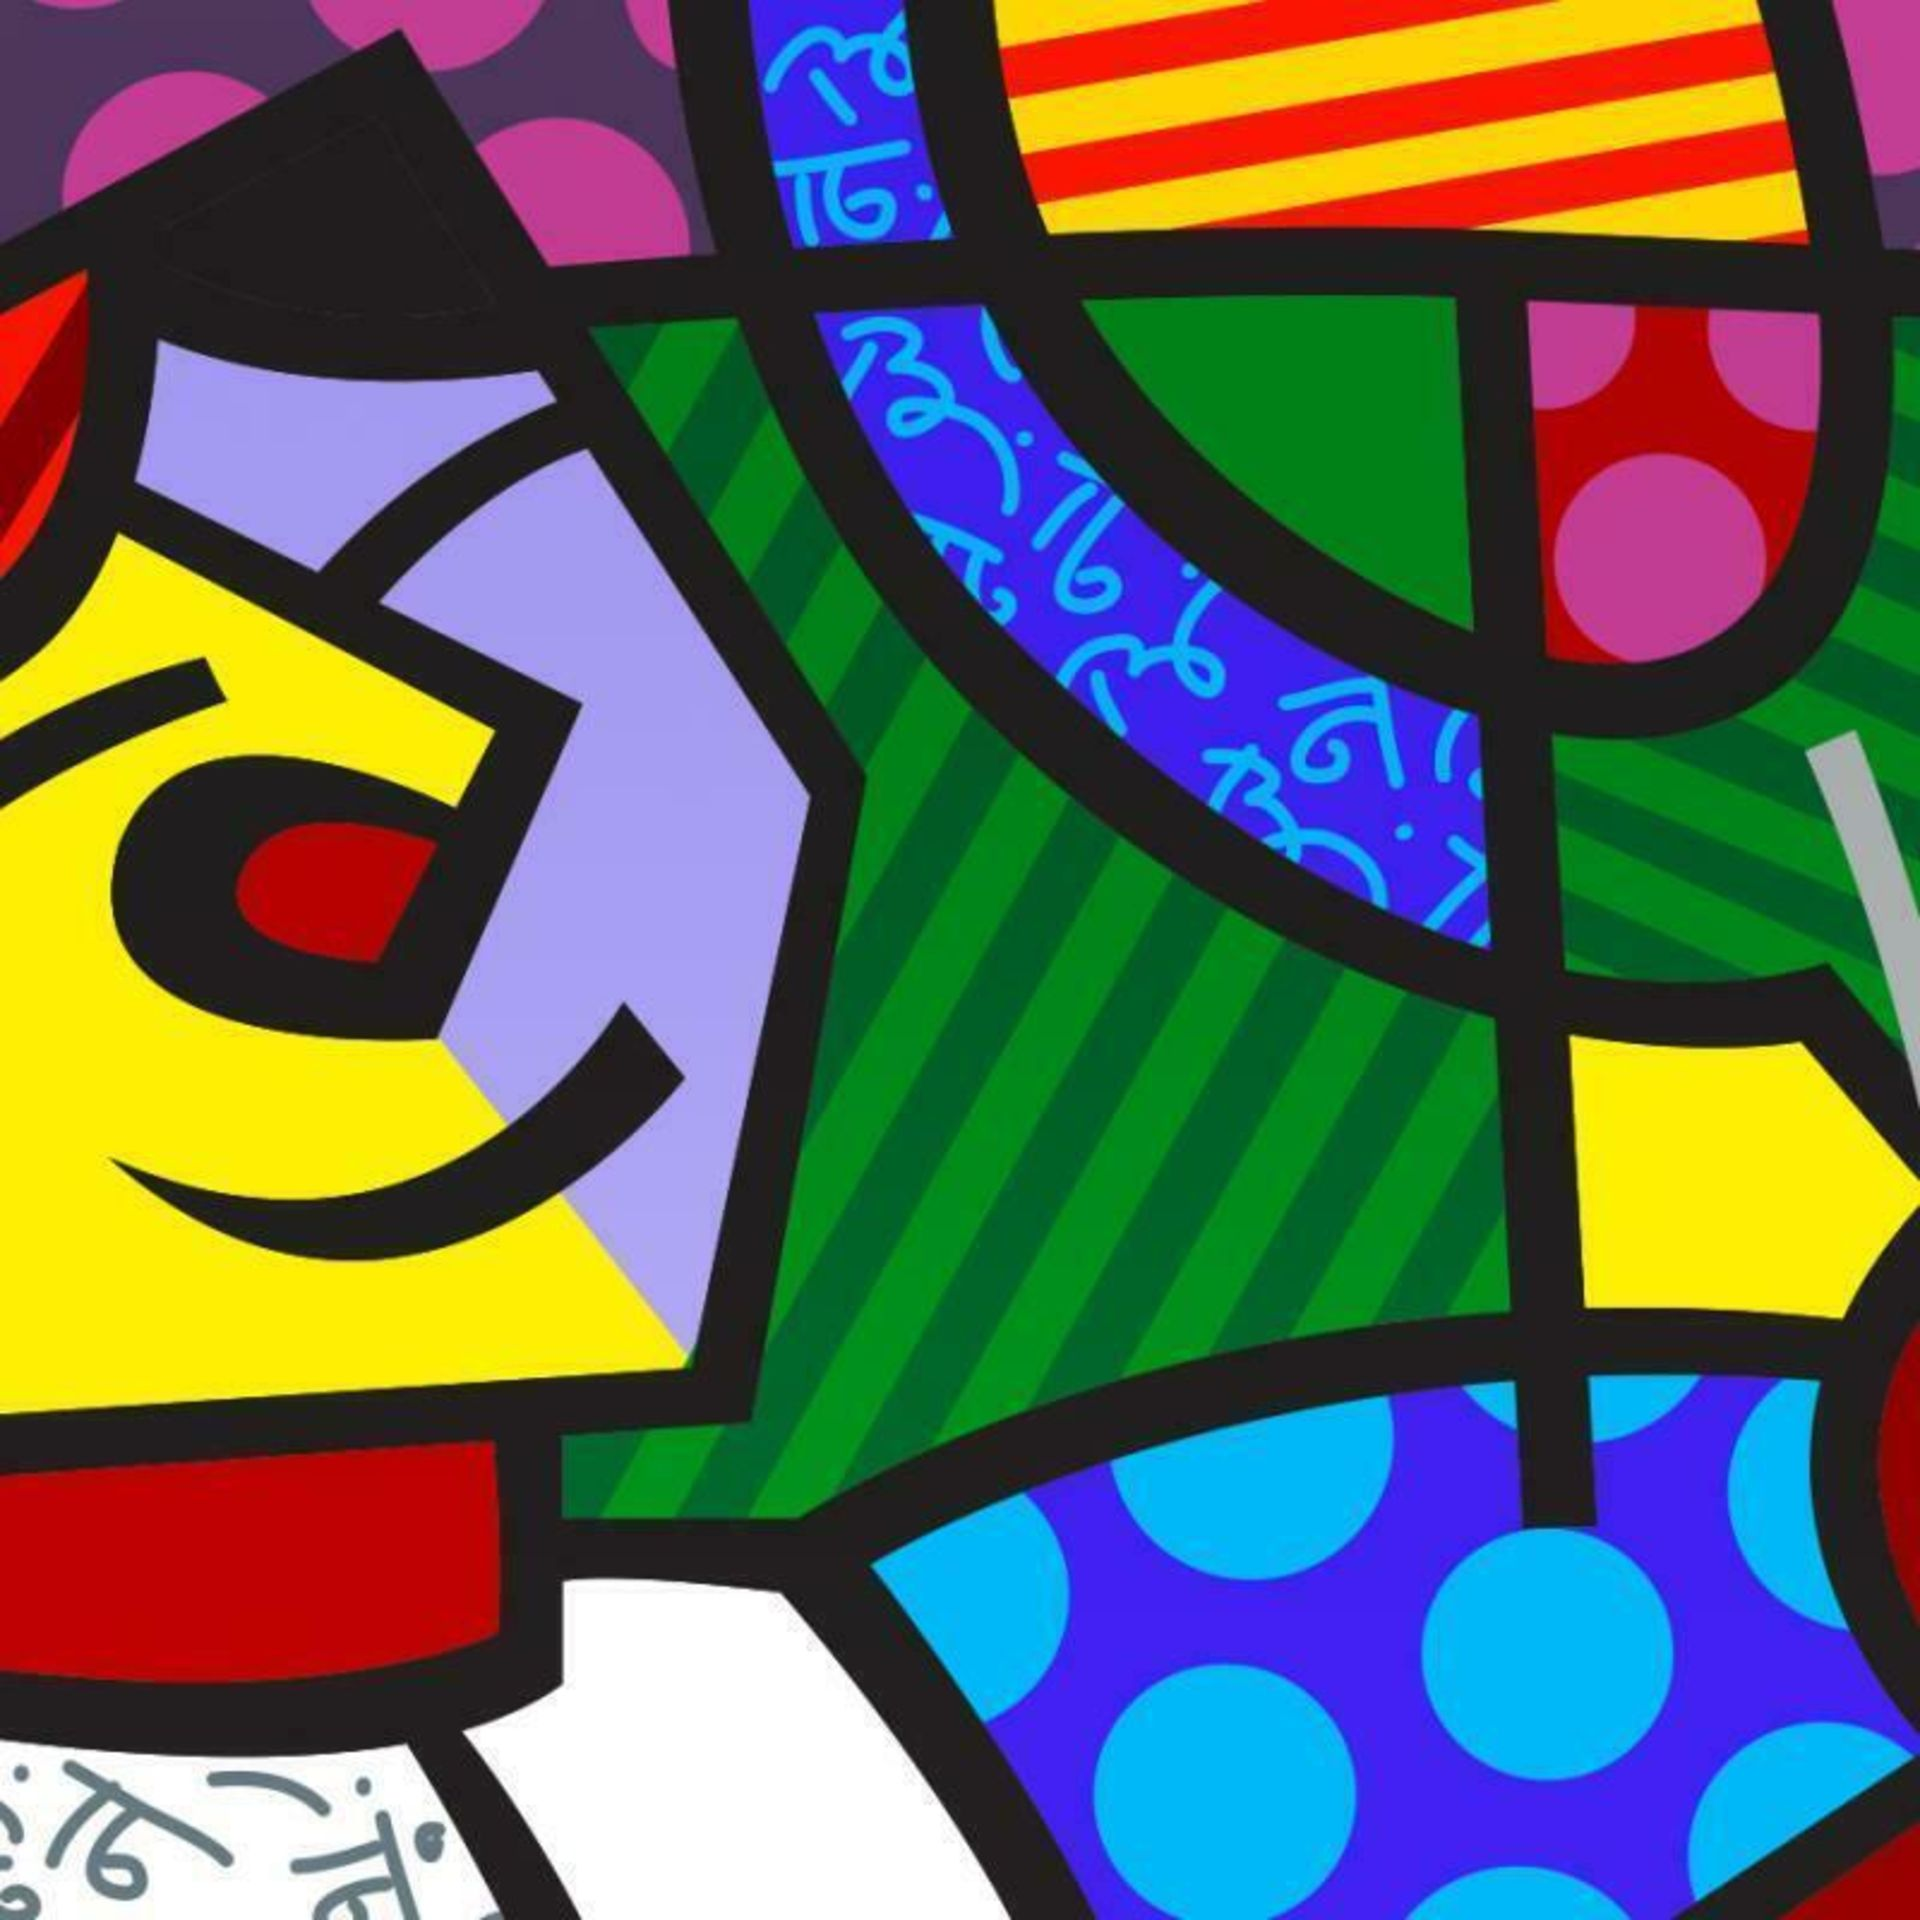 """Romero Britto """"Tennis Match"""" Hand Signed Giclee on Canvas; Authenticated - Image 2 of 2"""